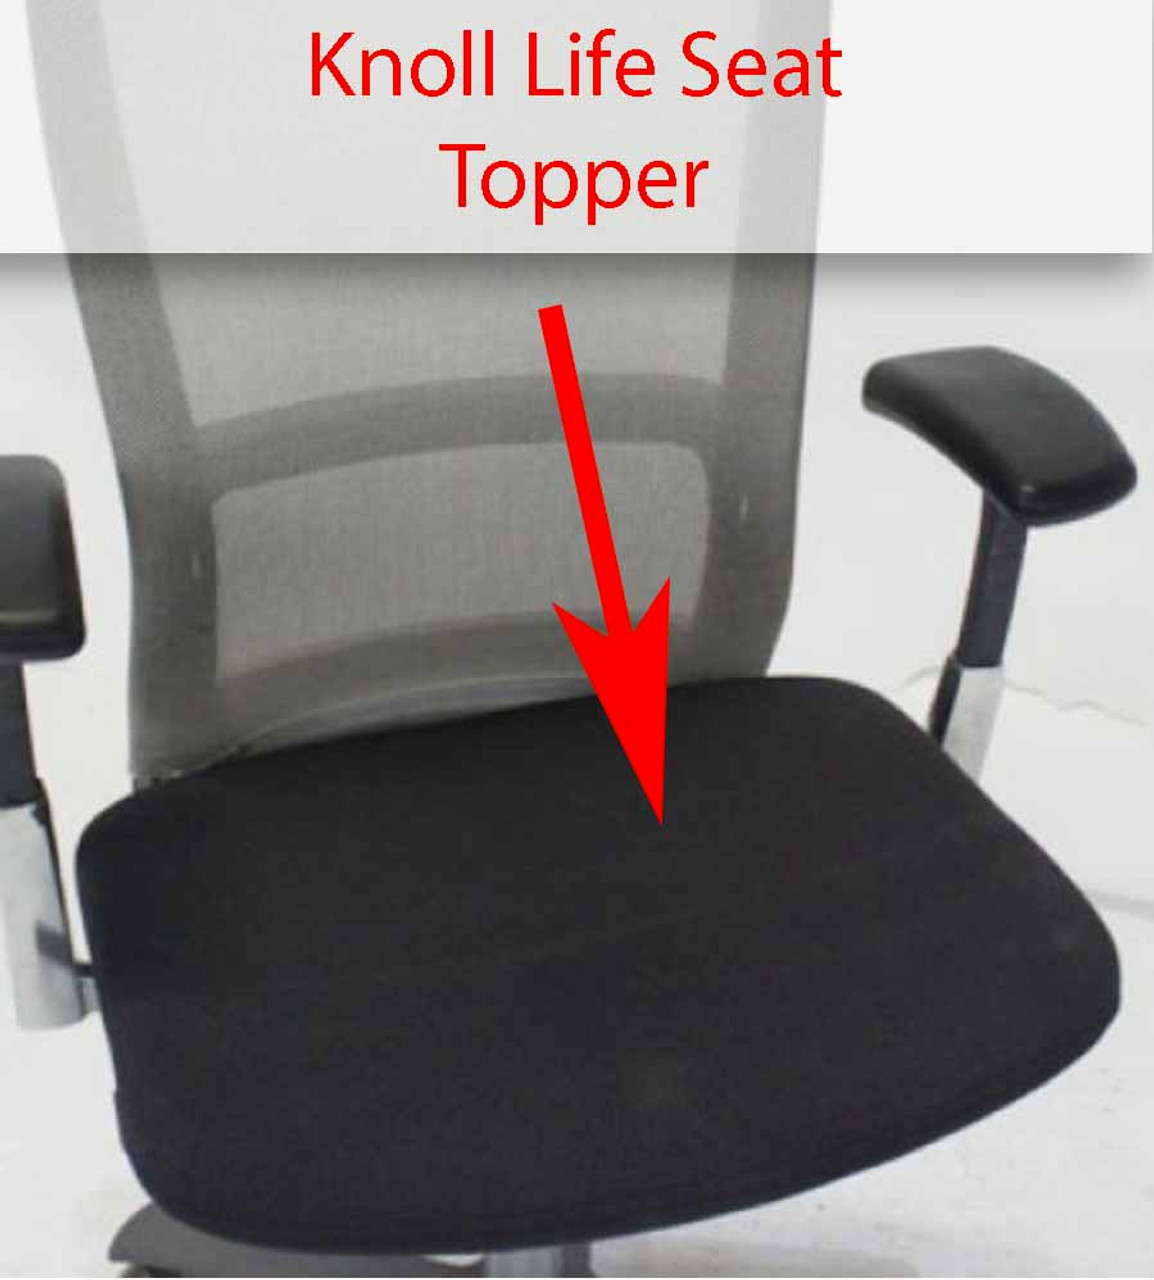 Knoll Life Chair Replacement Seat Topper Cushion Pad